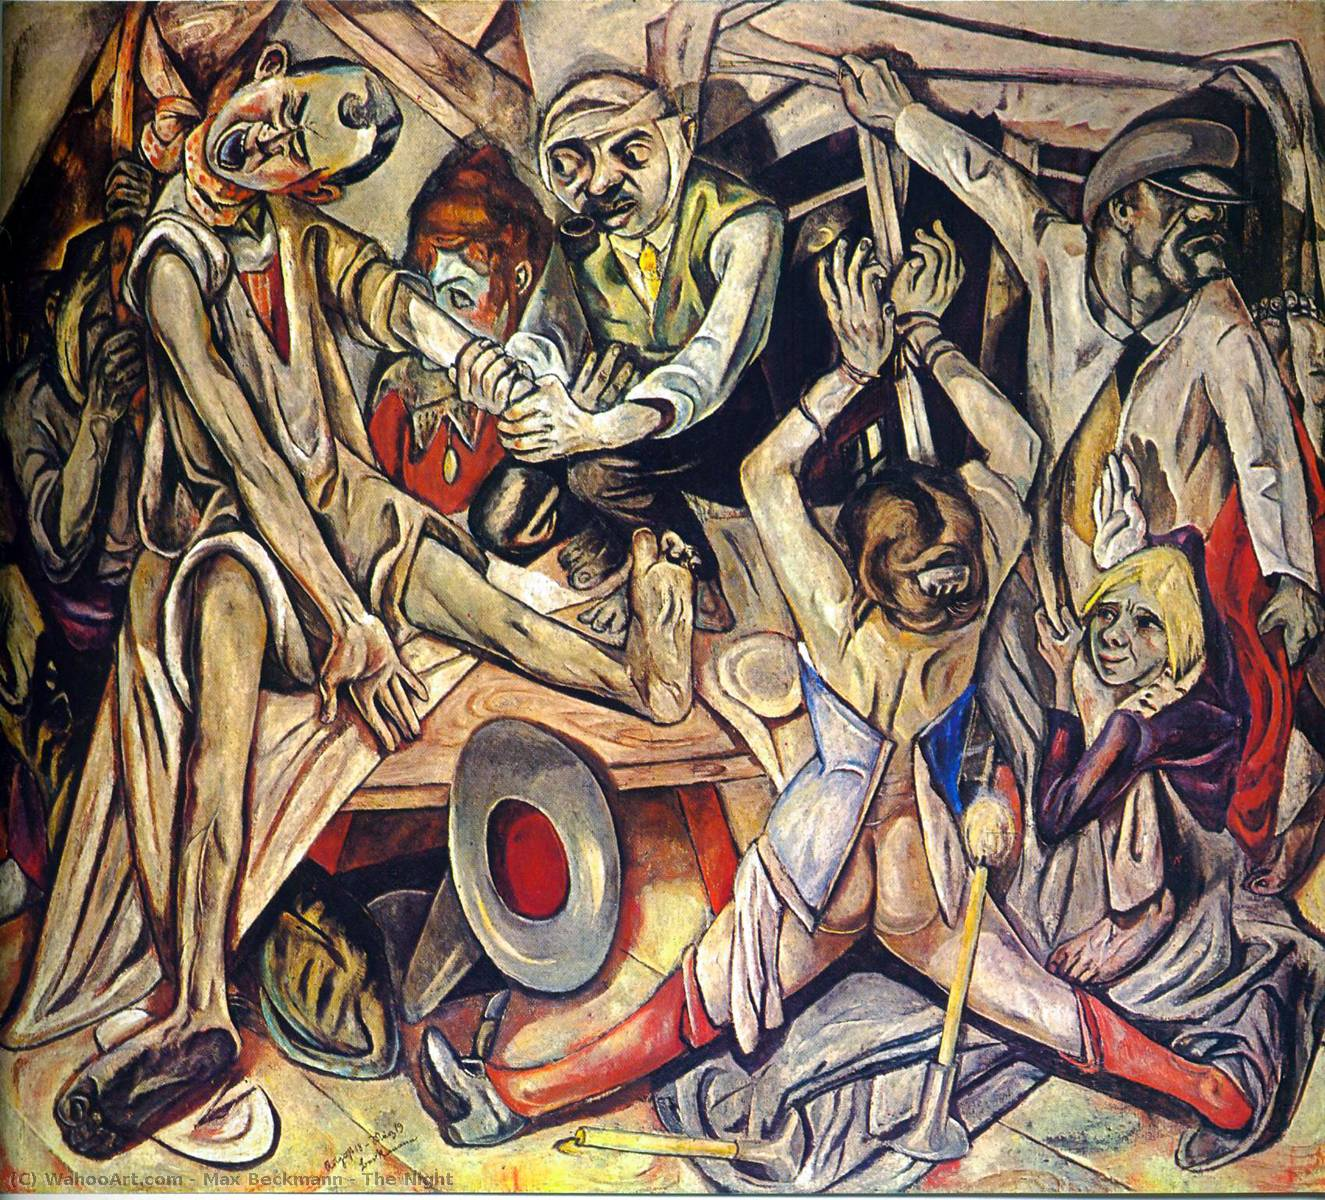 The Night, Oil On Canvas by Max Beckmann (1884-1950, Germany)